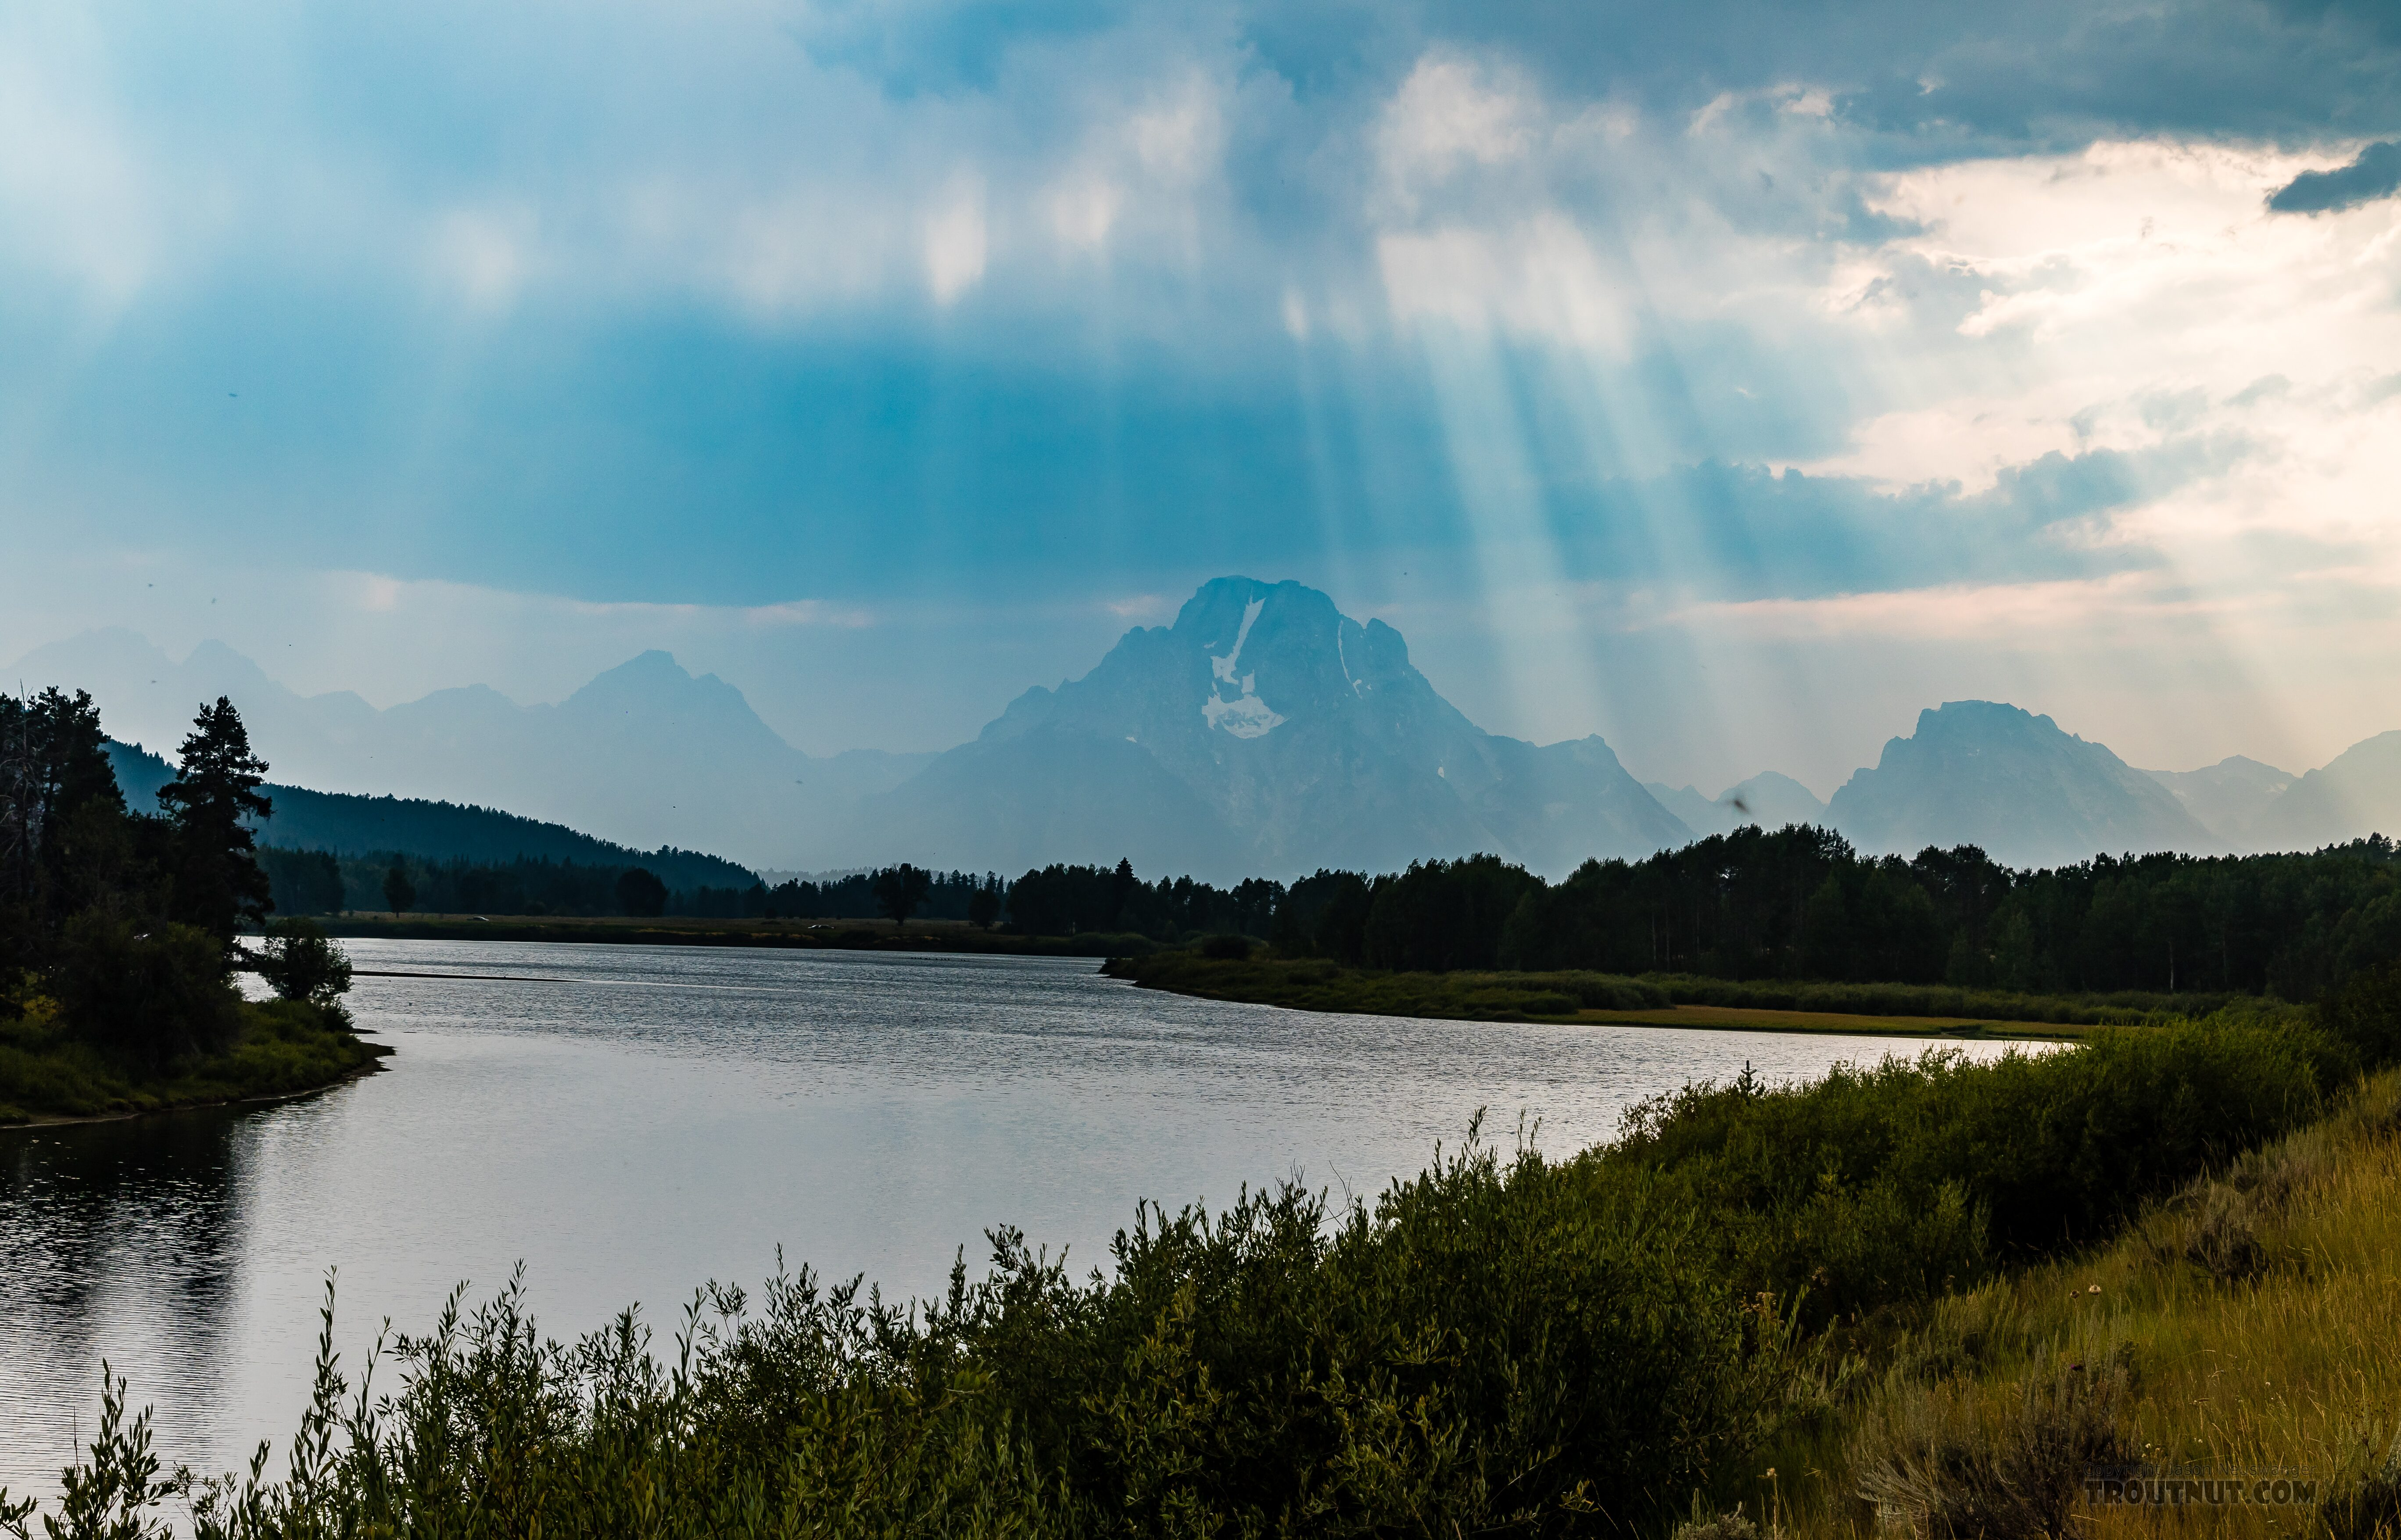 Teton Range behind the Snake River From the Snake River in Wyoming.